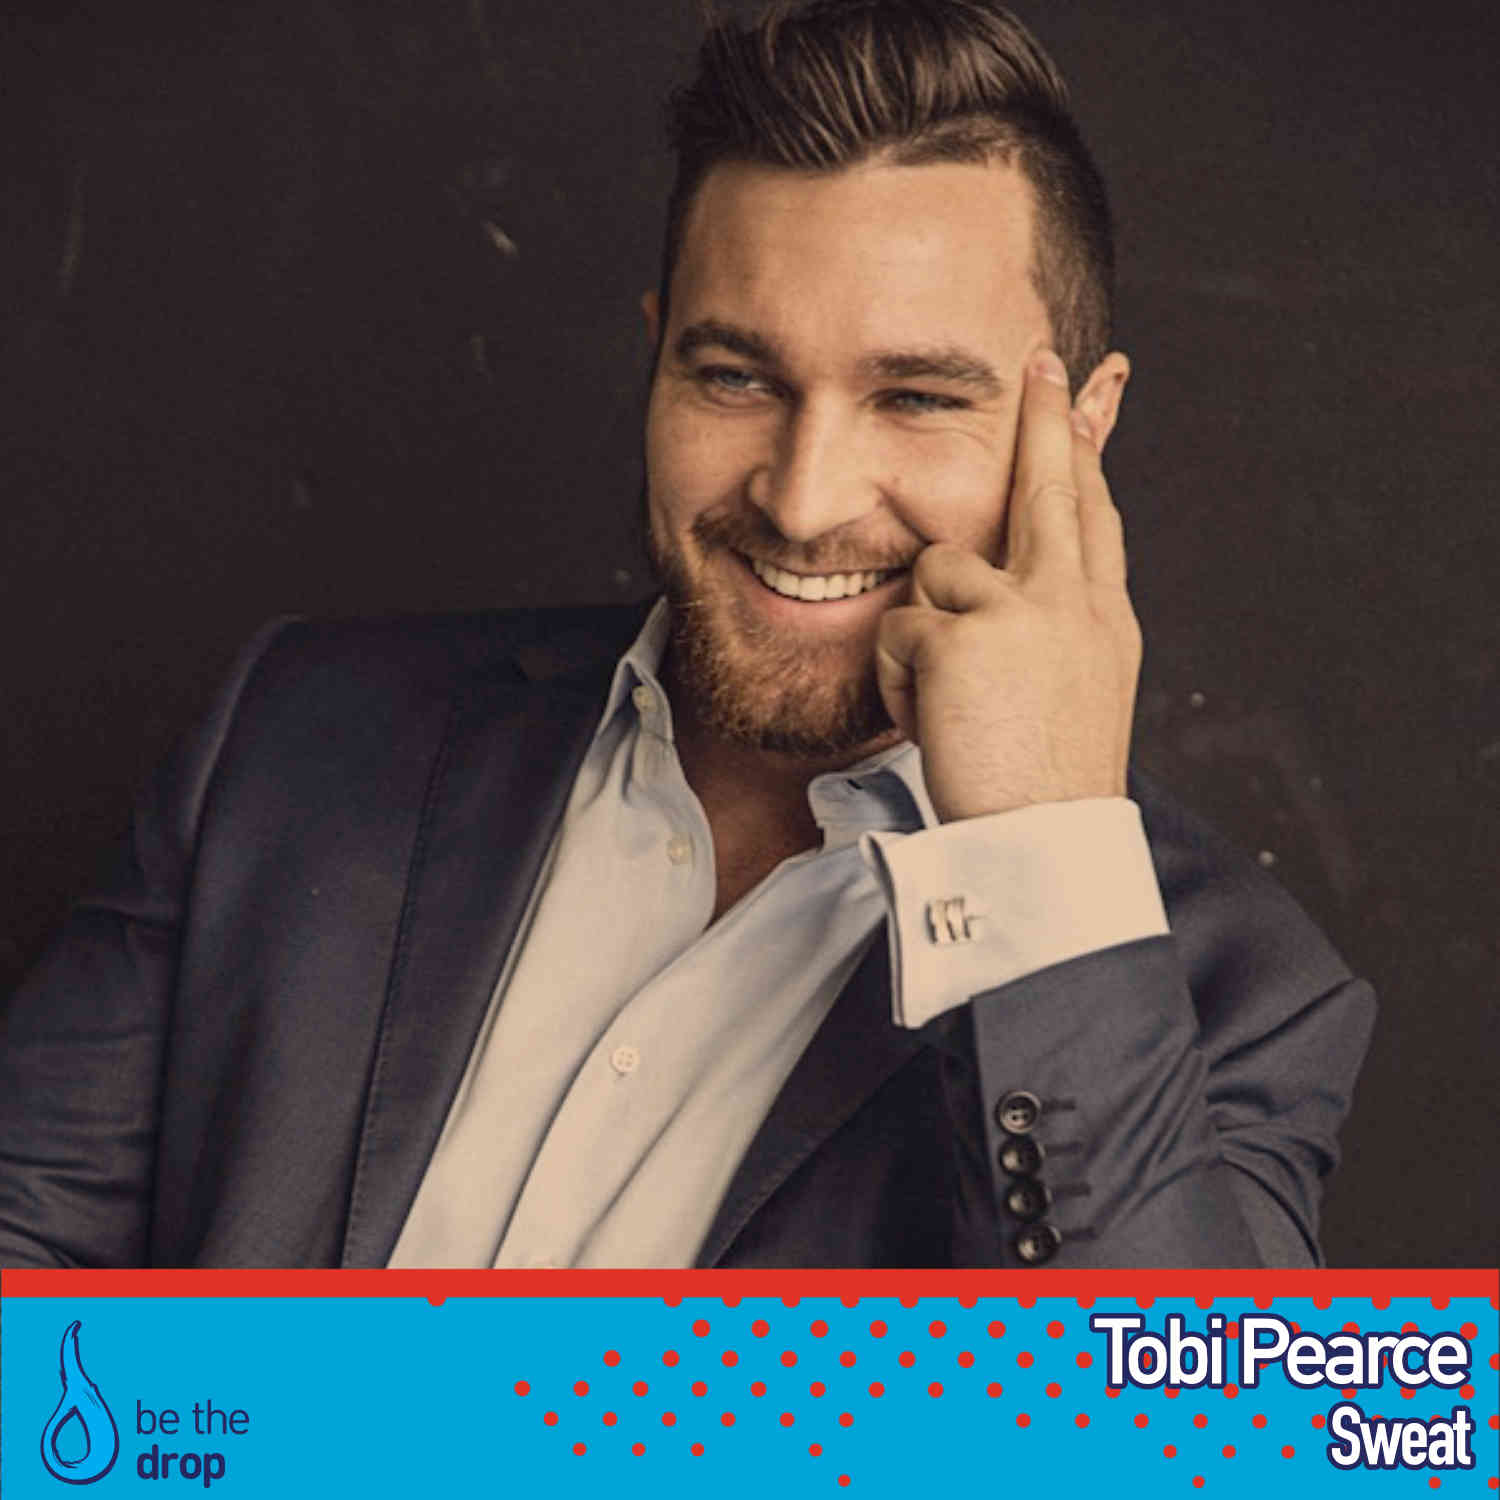 Tobi Pearce On How To Build An International Business [Podcast]